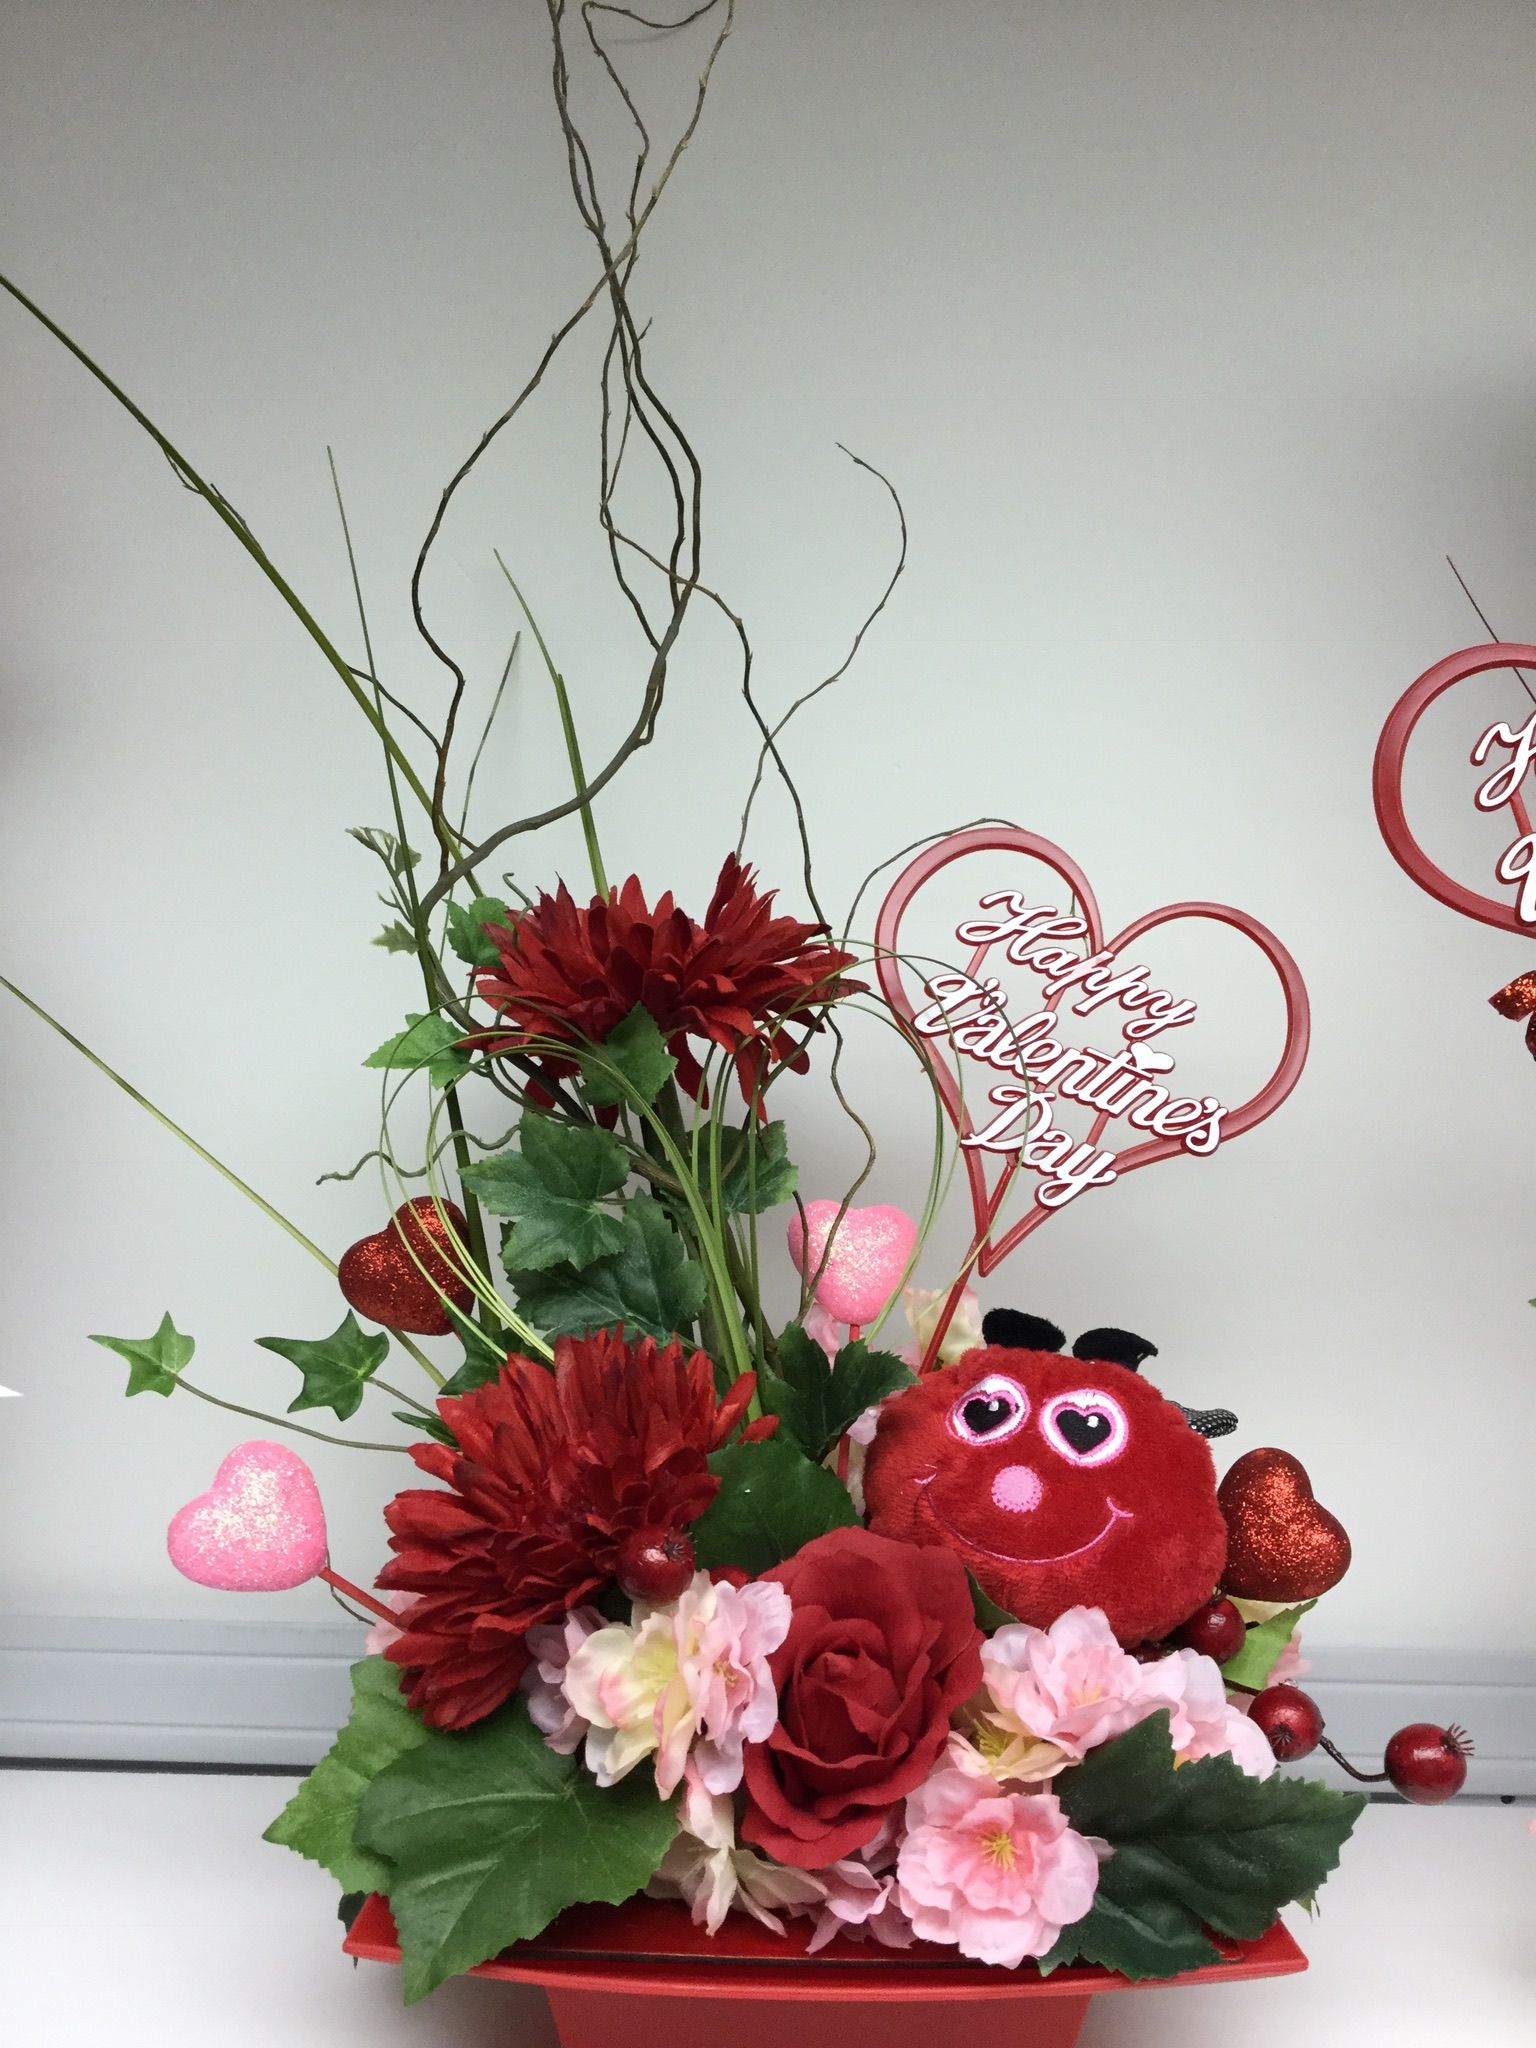 Silk Florals Llc Valentine Arrangements 2018 Valentine S Day Flower Arrangements Valentine Flower Arrangements Flower Arrangements